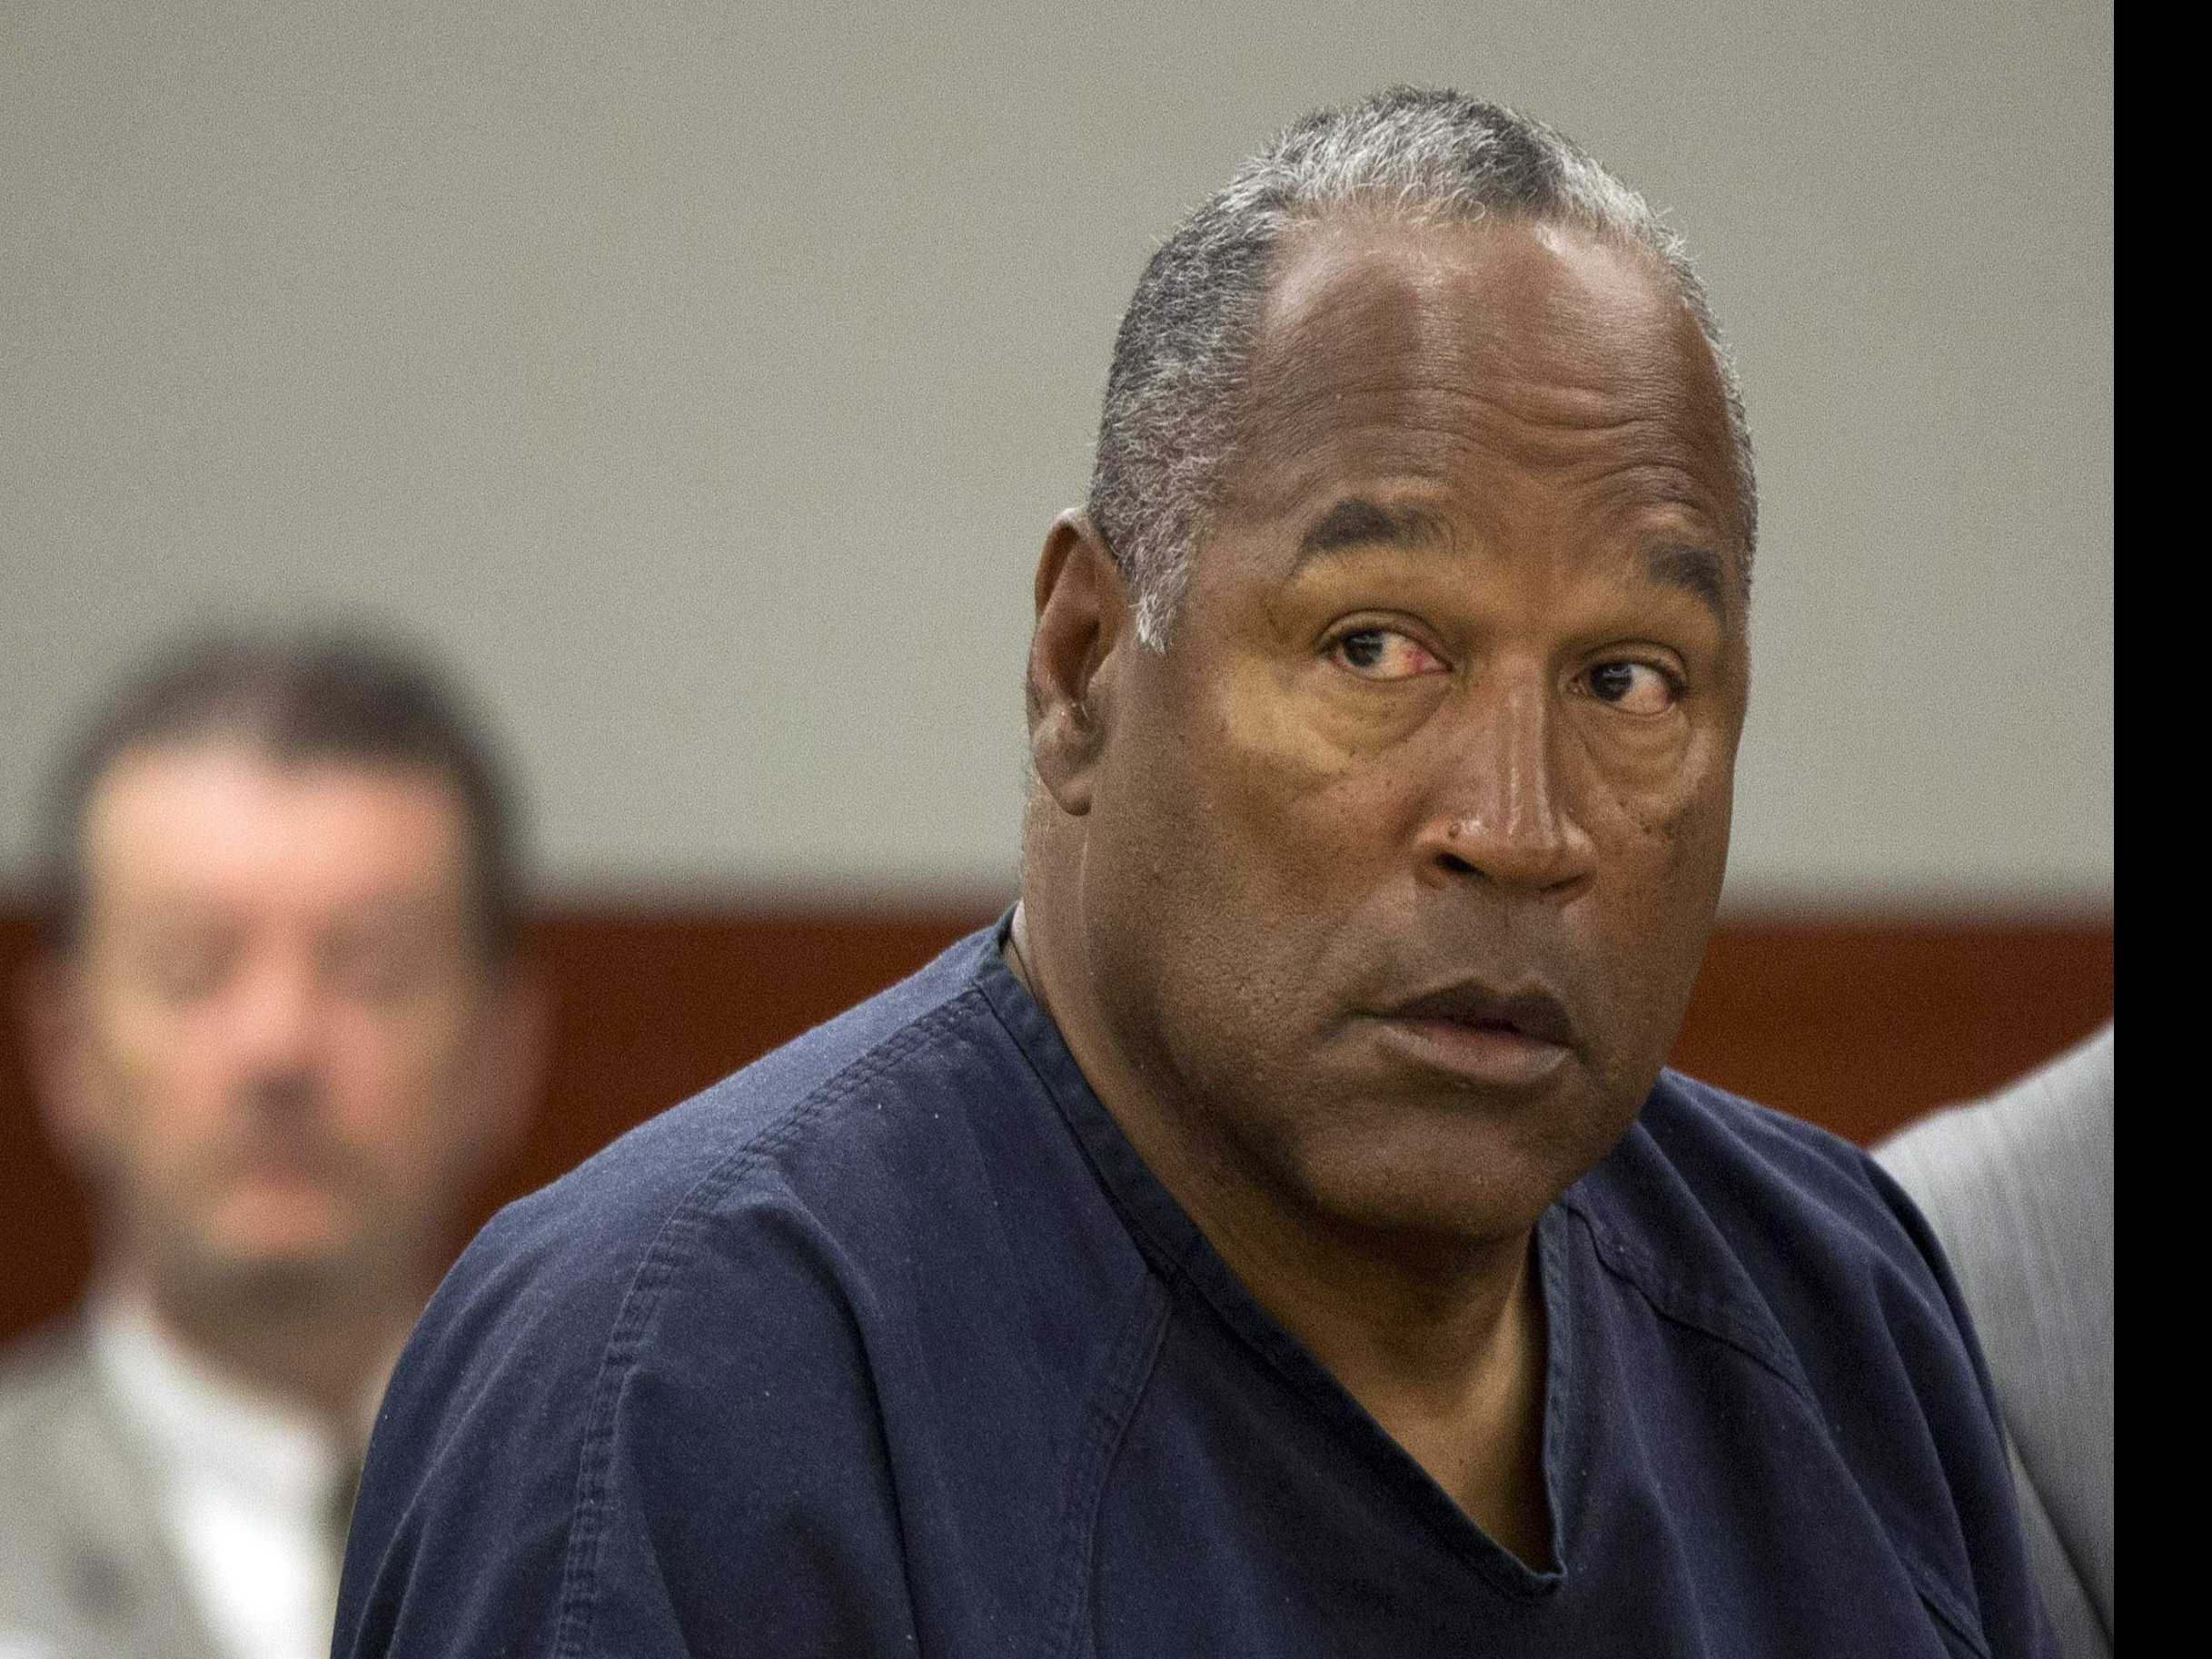 On Eve of Parole Hearing, O.J.'s Cell Masturbation Episode Could Derail Hopes of Freedom